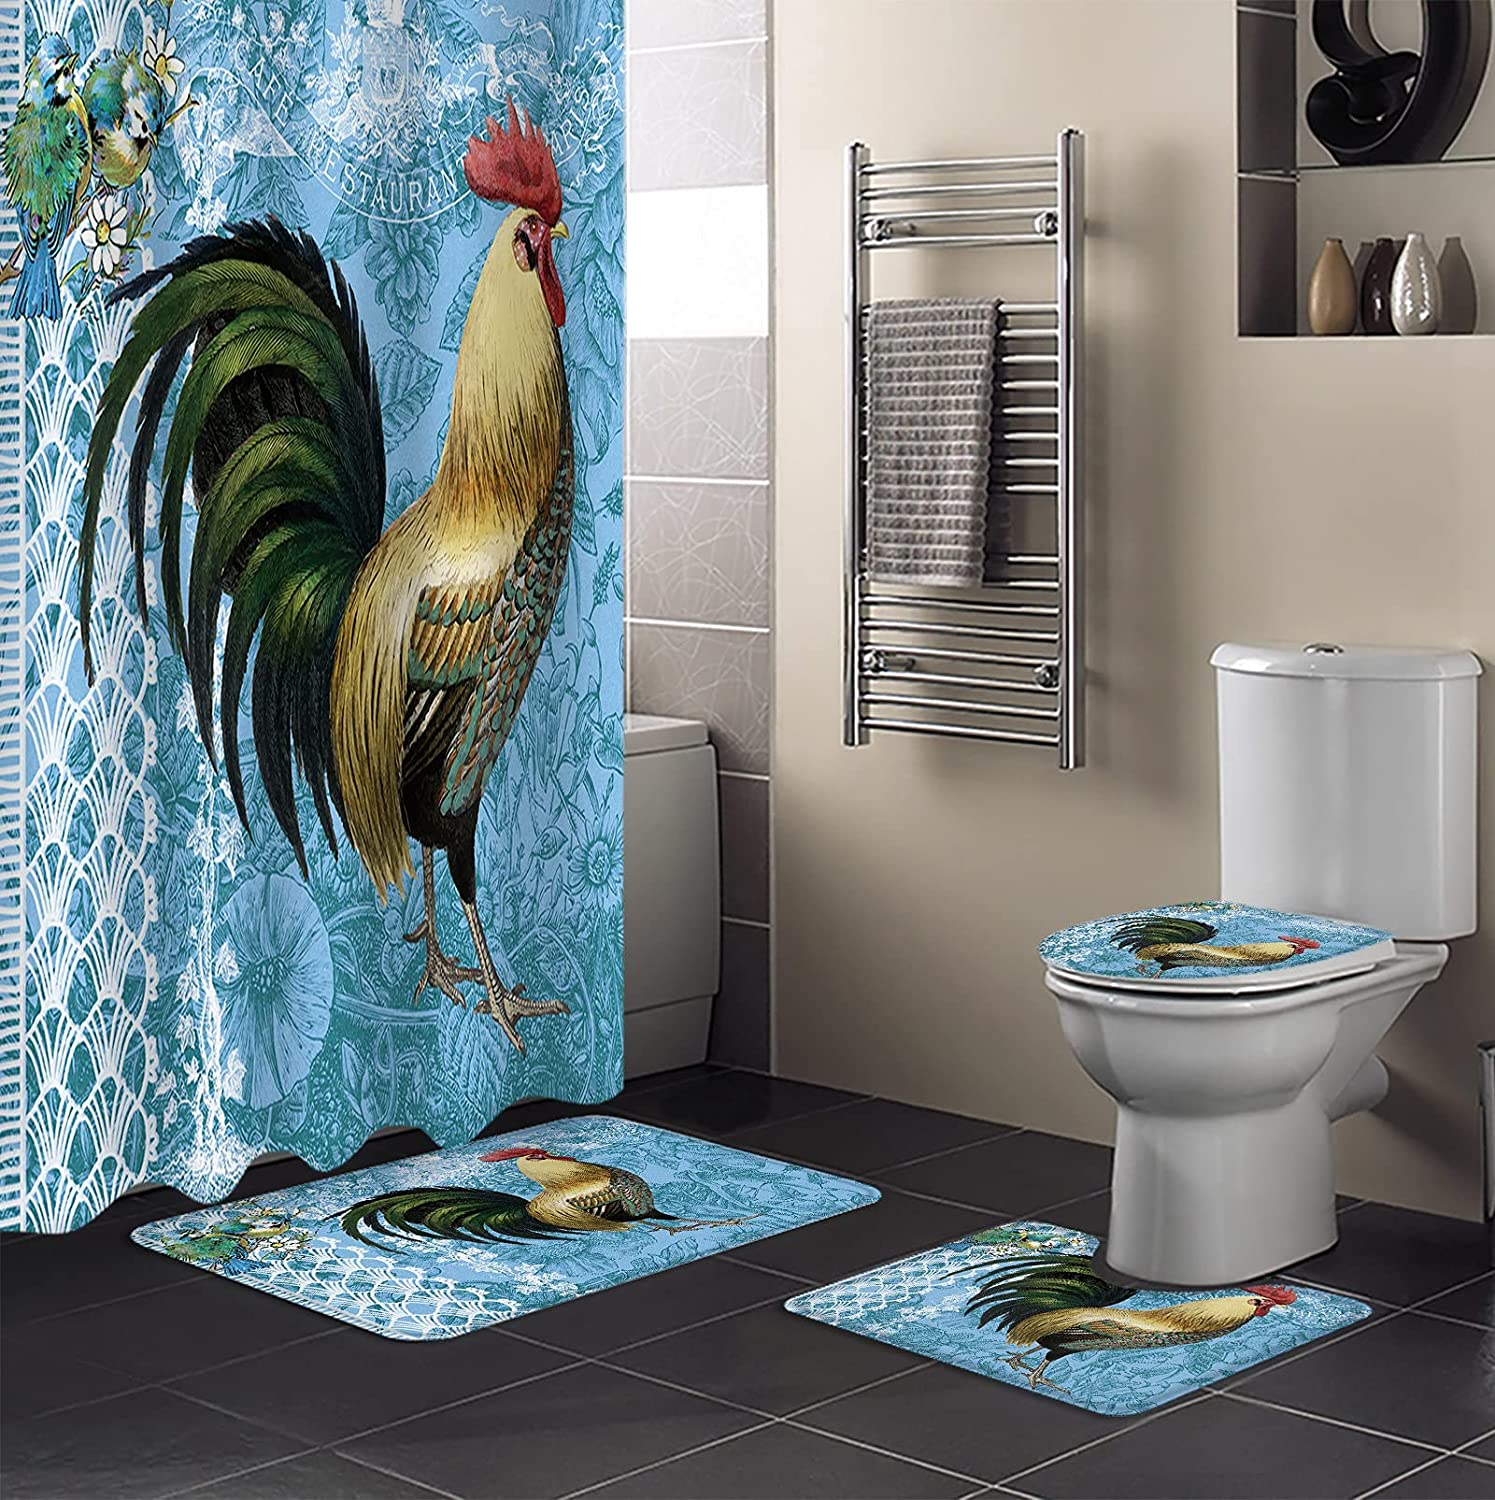 4 Luxury Piece Shower Curtain Sets with Ranking TOP10 Toilet Non-Slip Lid Rug CoverB